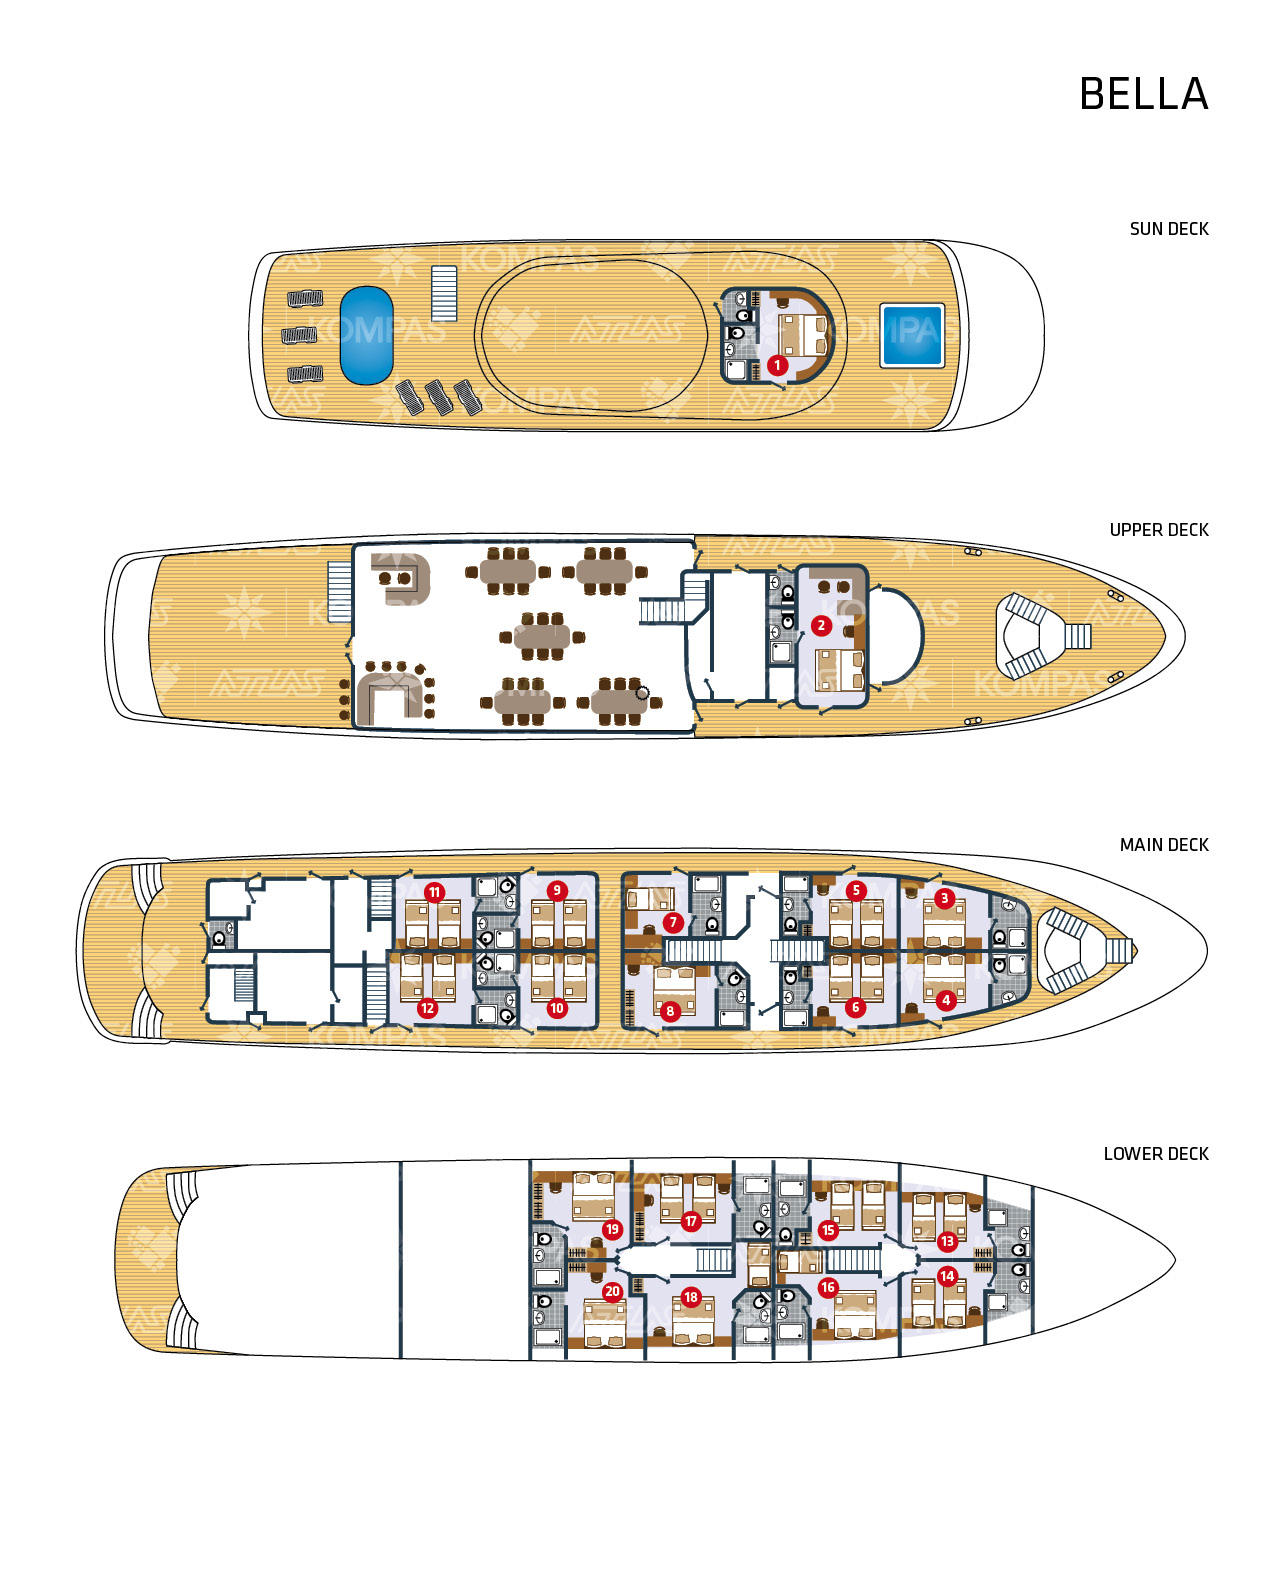 MS Bella Deck Plan